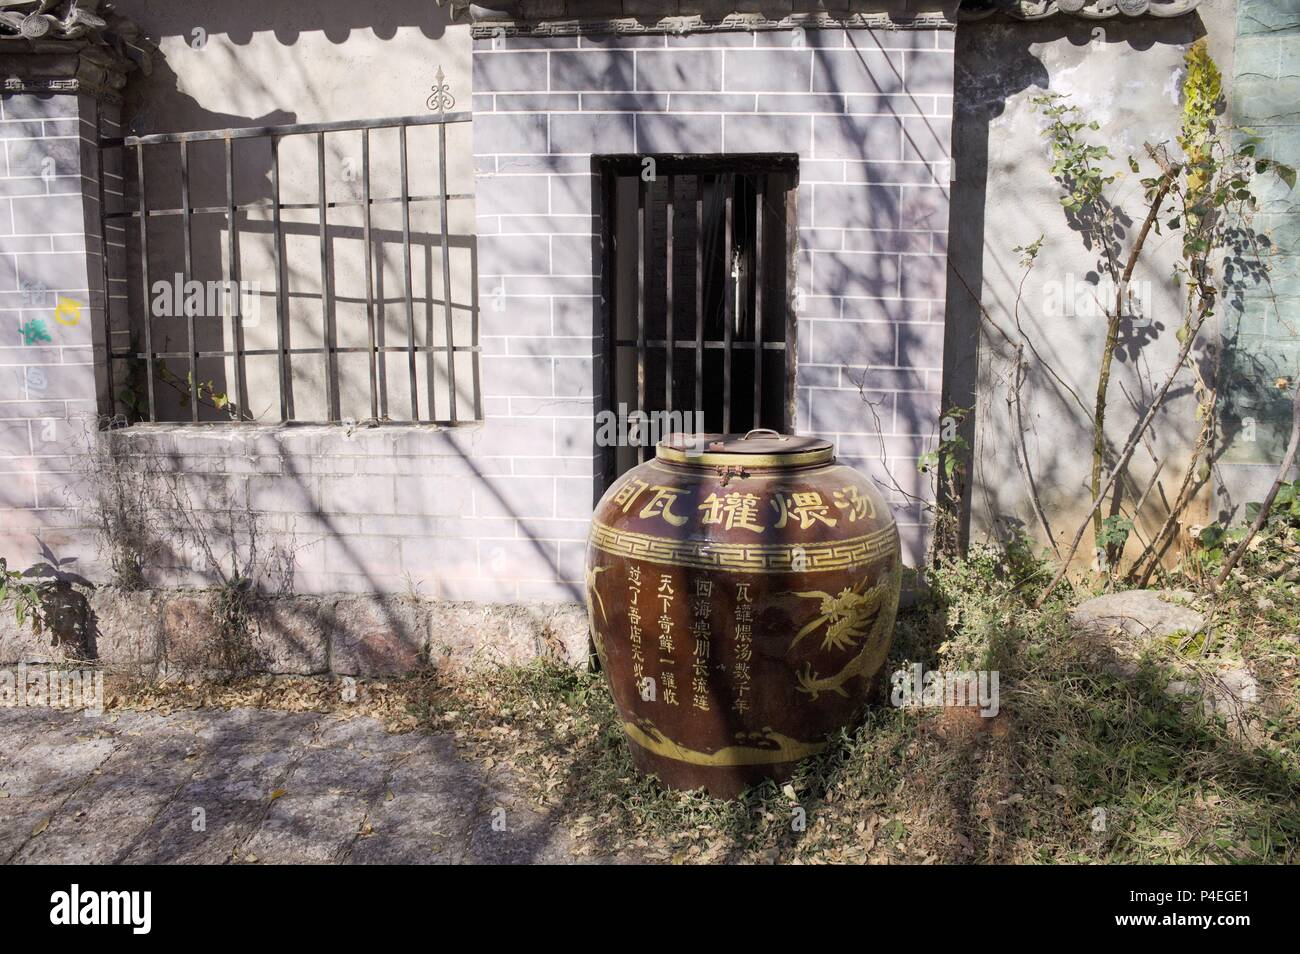 Old chinese vase in the garden (Old Town of Lijiang, Yunnan, China) - Stock Image